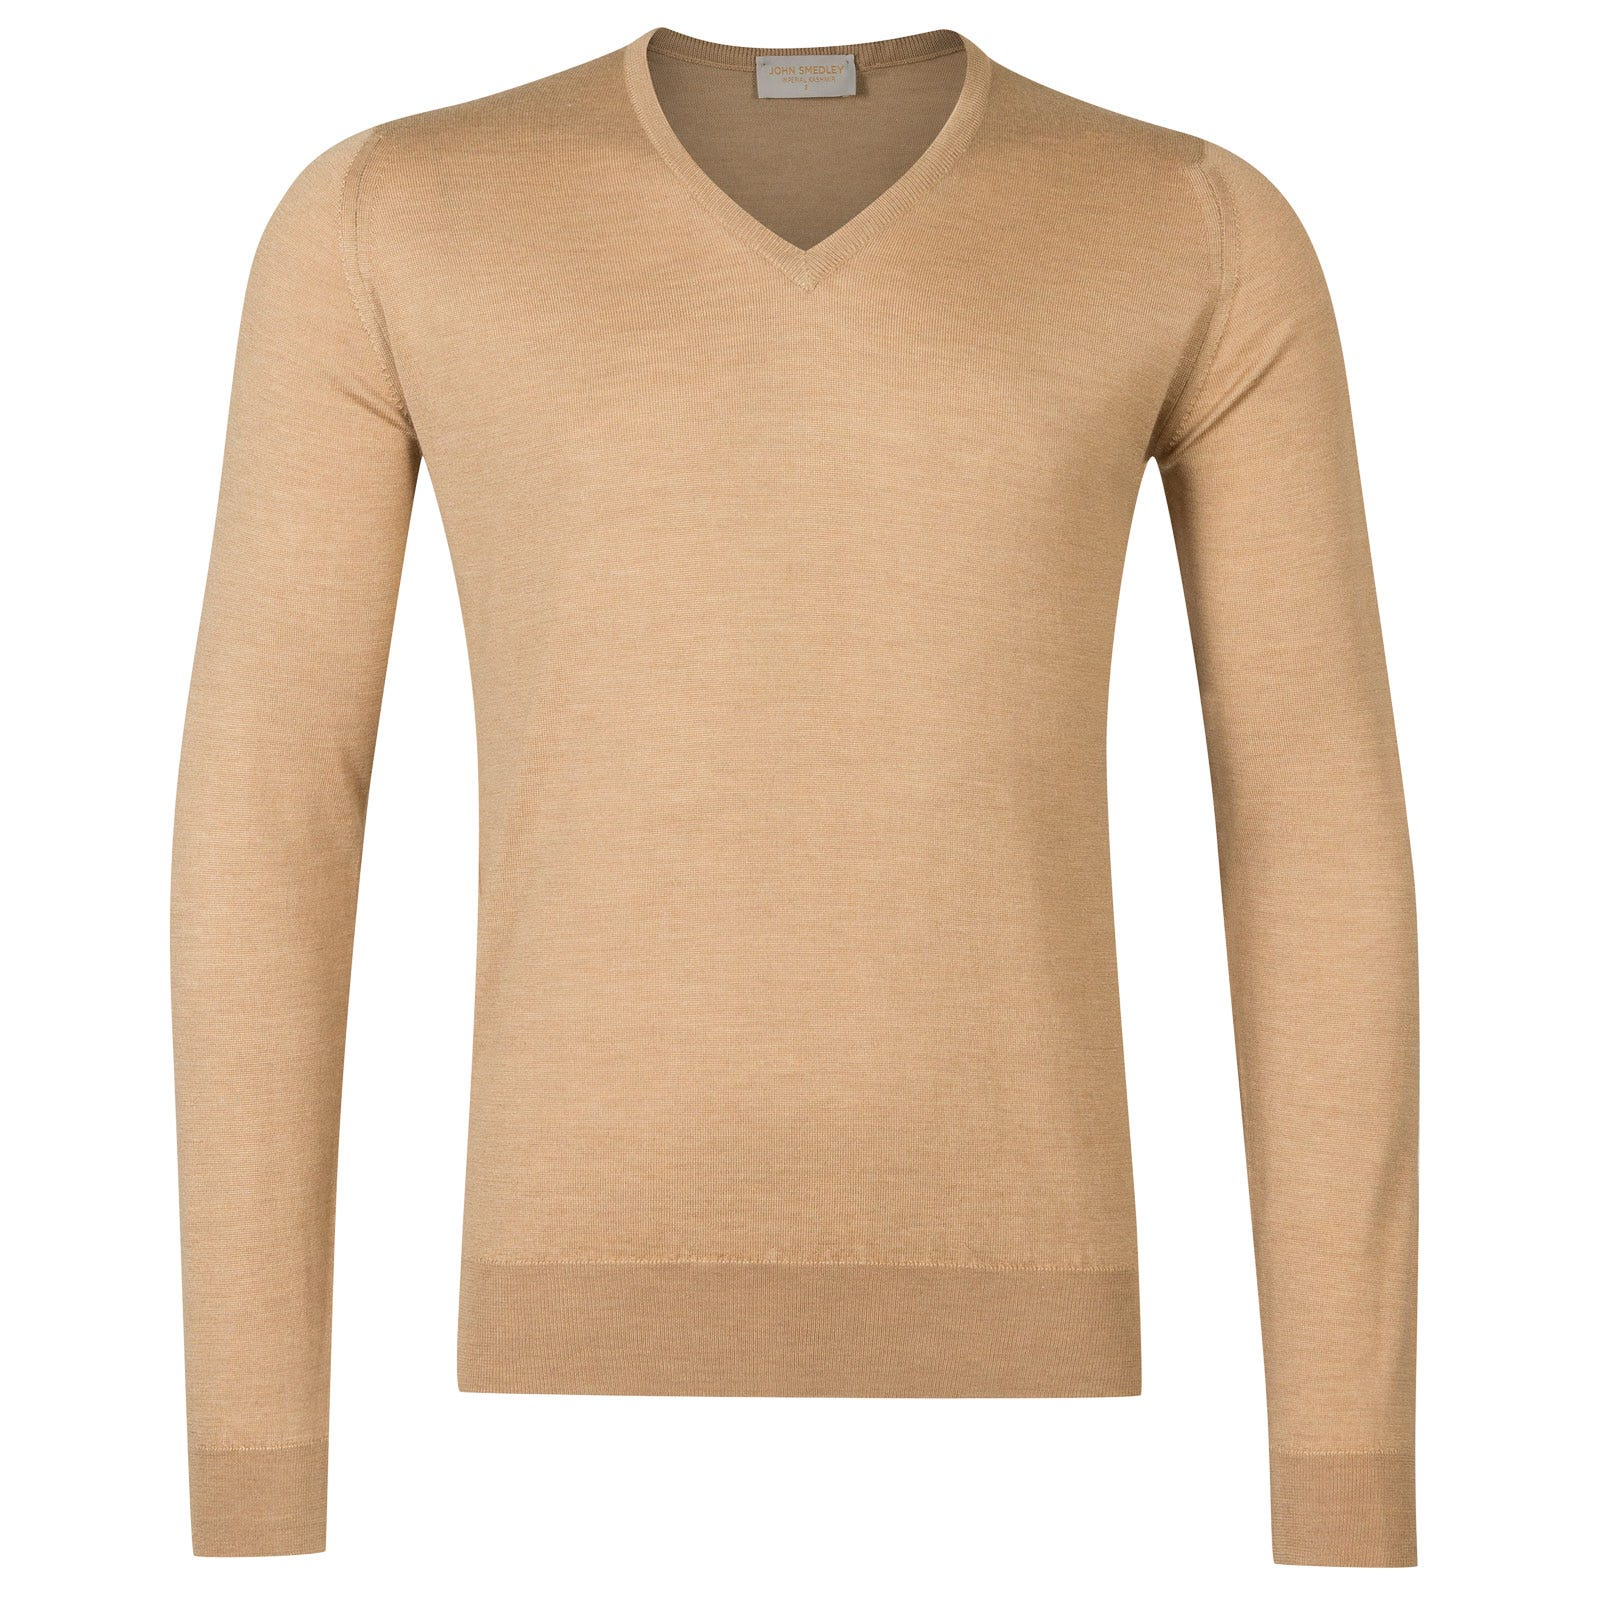 John Smedley Curlwell Cashmere and Silk Pullover in Camel-L